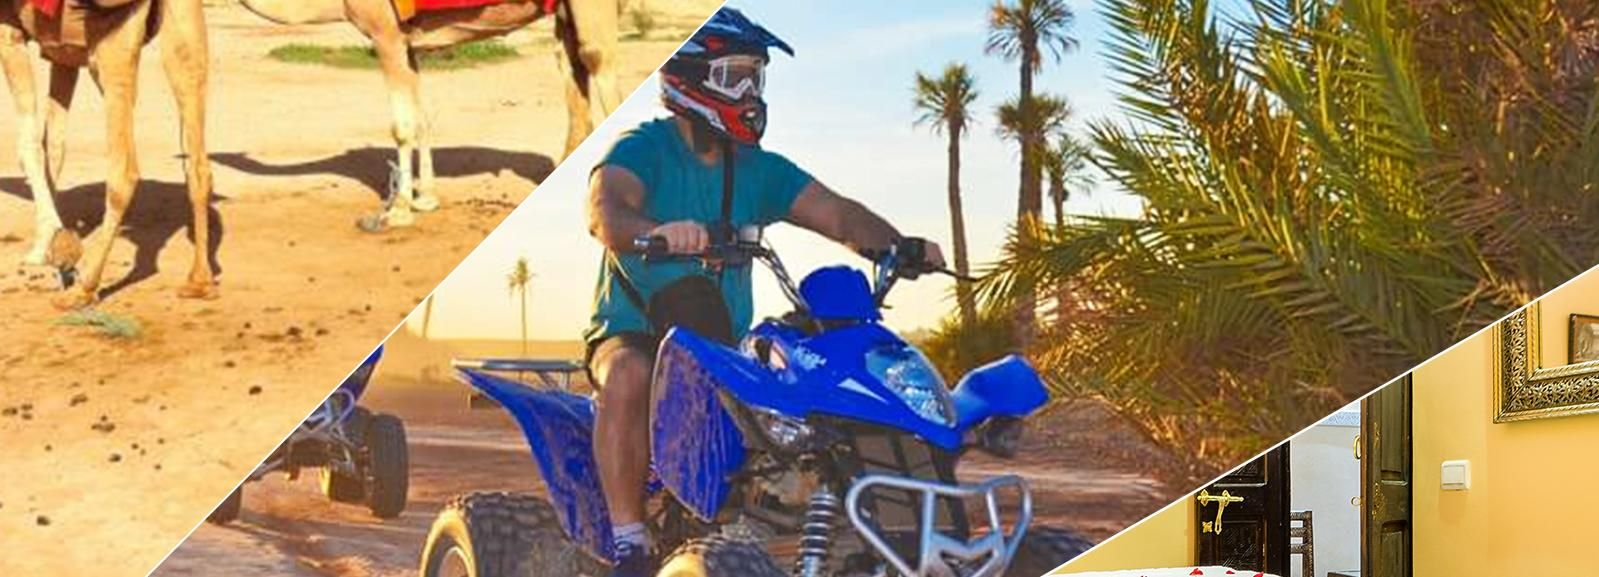 Marrakech: Day Trip with Camel Ride, Quad Bike & Spa